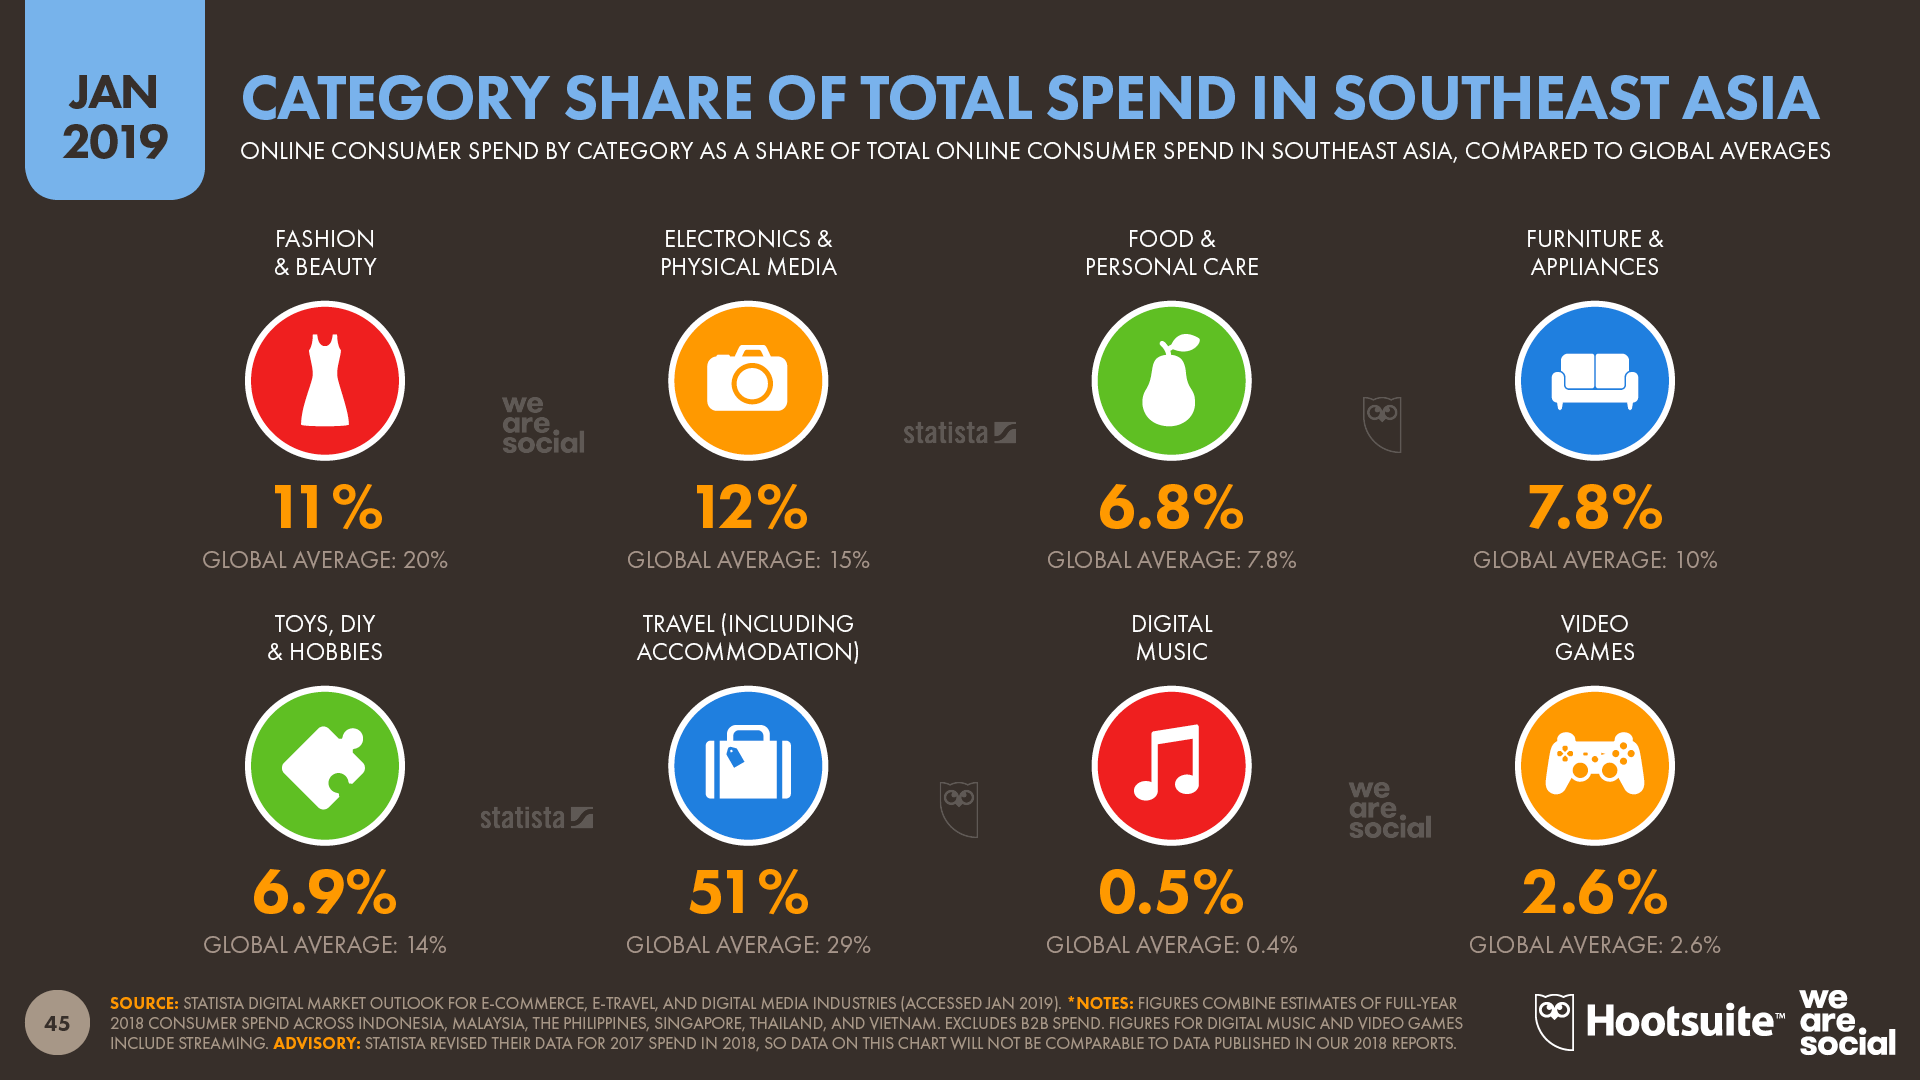 Annual Ecommerce Growth by Category in Southeast Asia